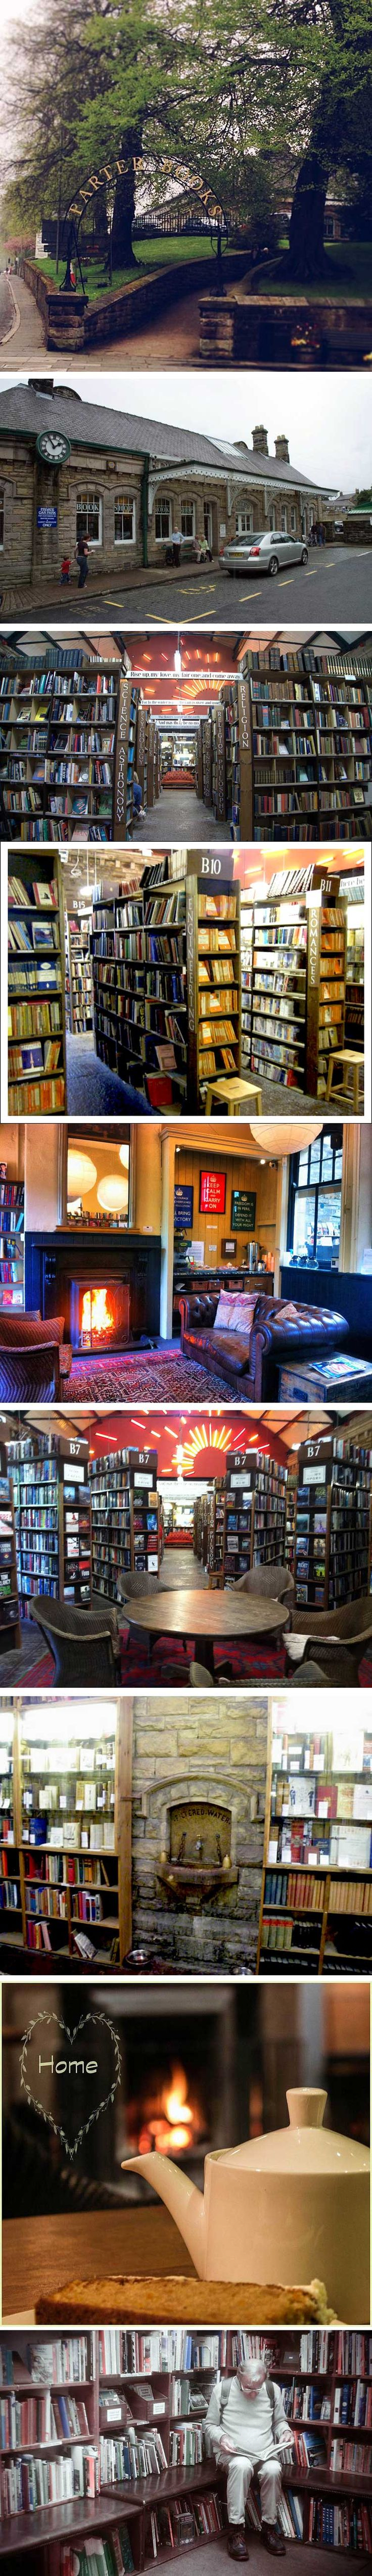 100 best bookstores uk images on pinterest bookstores book another photostream of barter books in alnwick northumberland uk which comes closest to